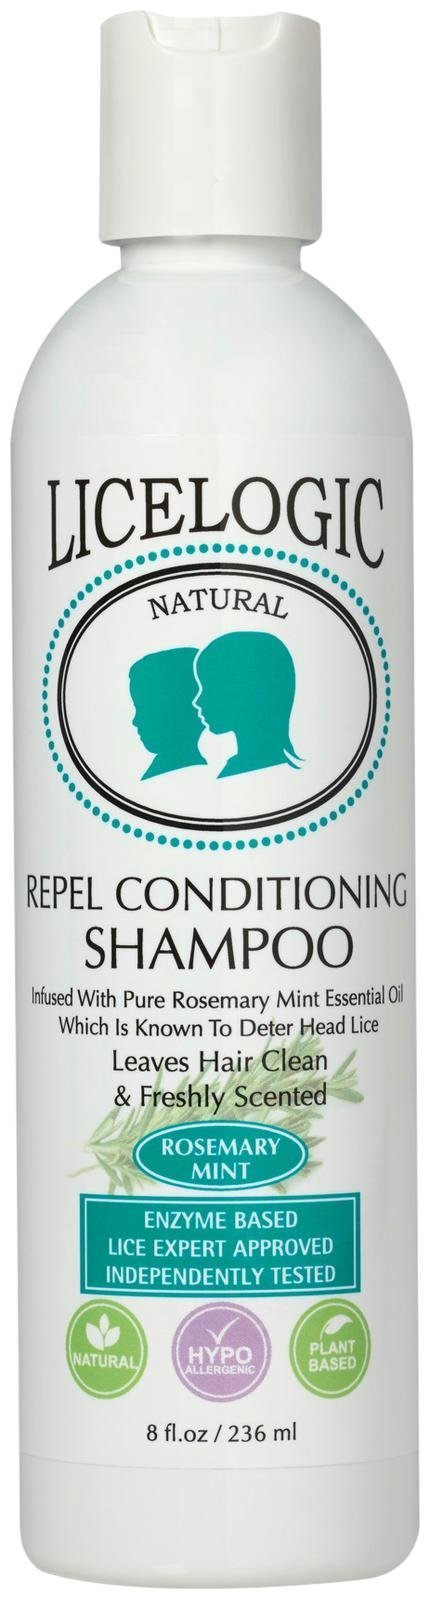 LiceLogic Natural Enzyme Based Lice Repel Conditioning Shampoo, 8 oz Rosemary Mint